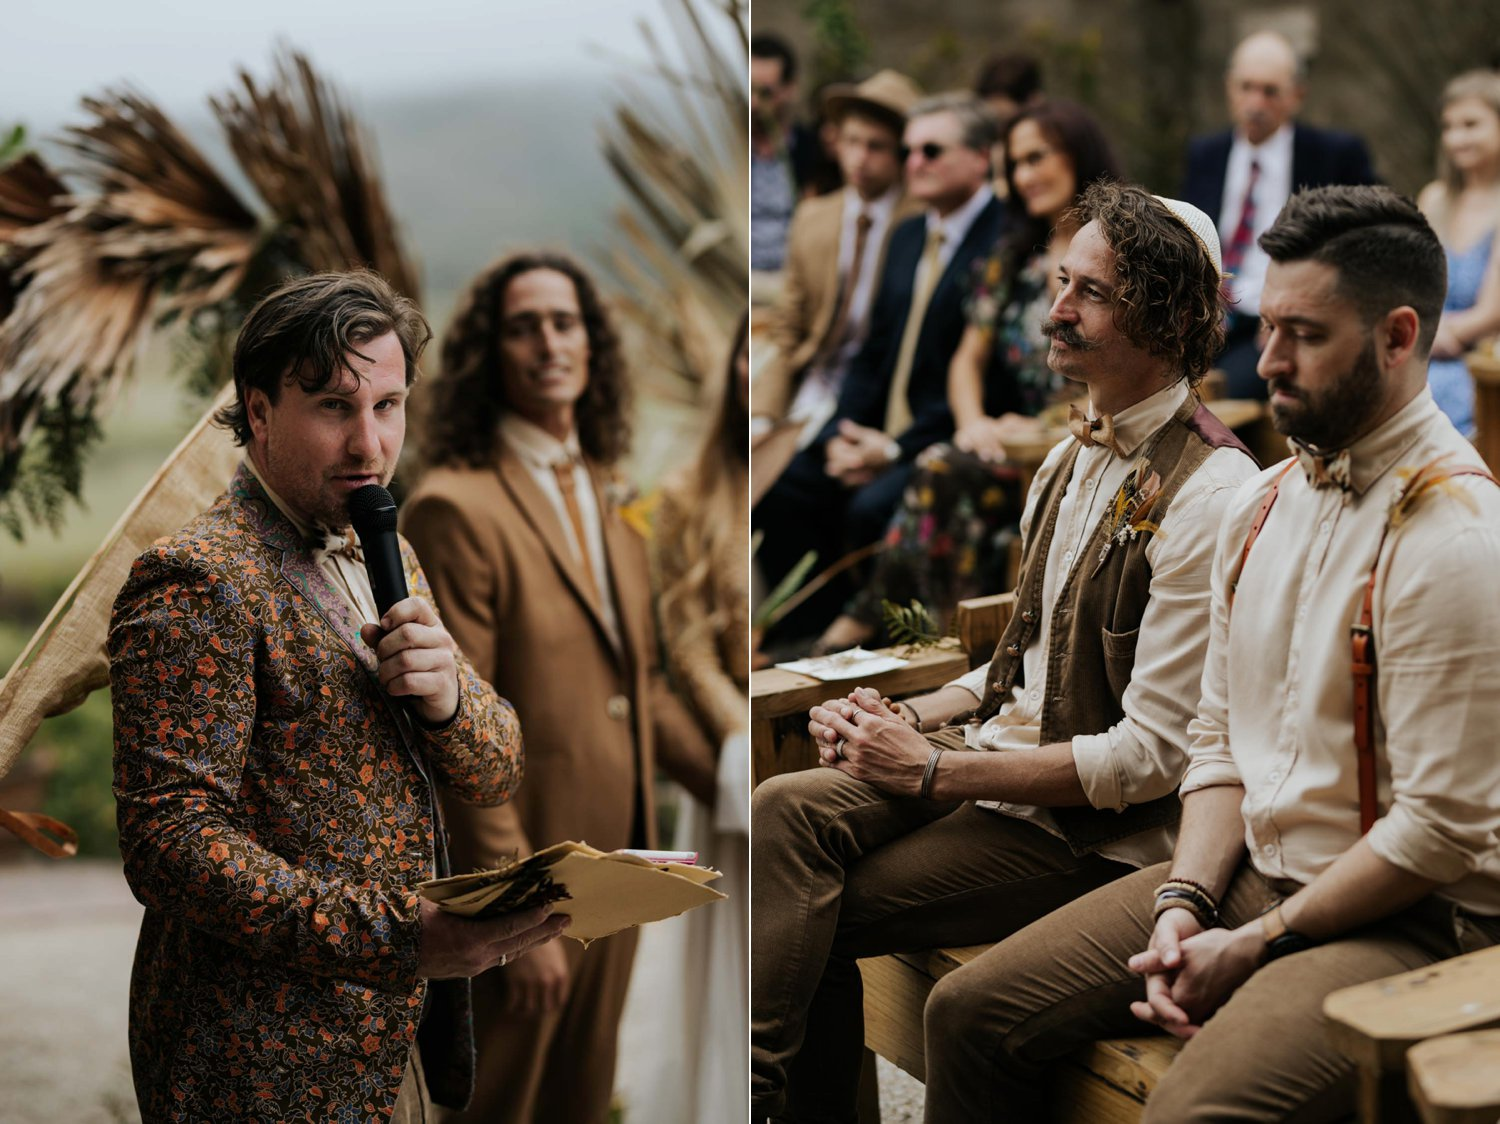 Boho wedding ceremony at Emily Moon River Lodge in Plett